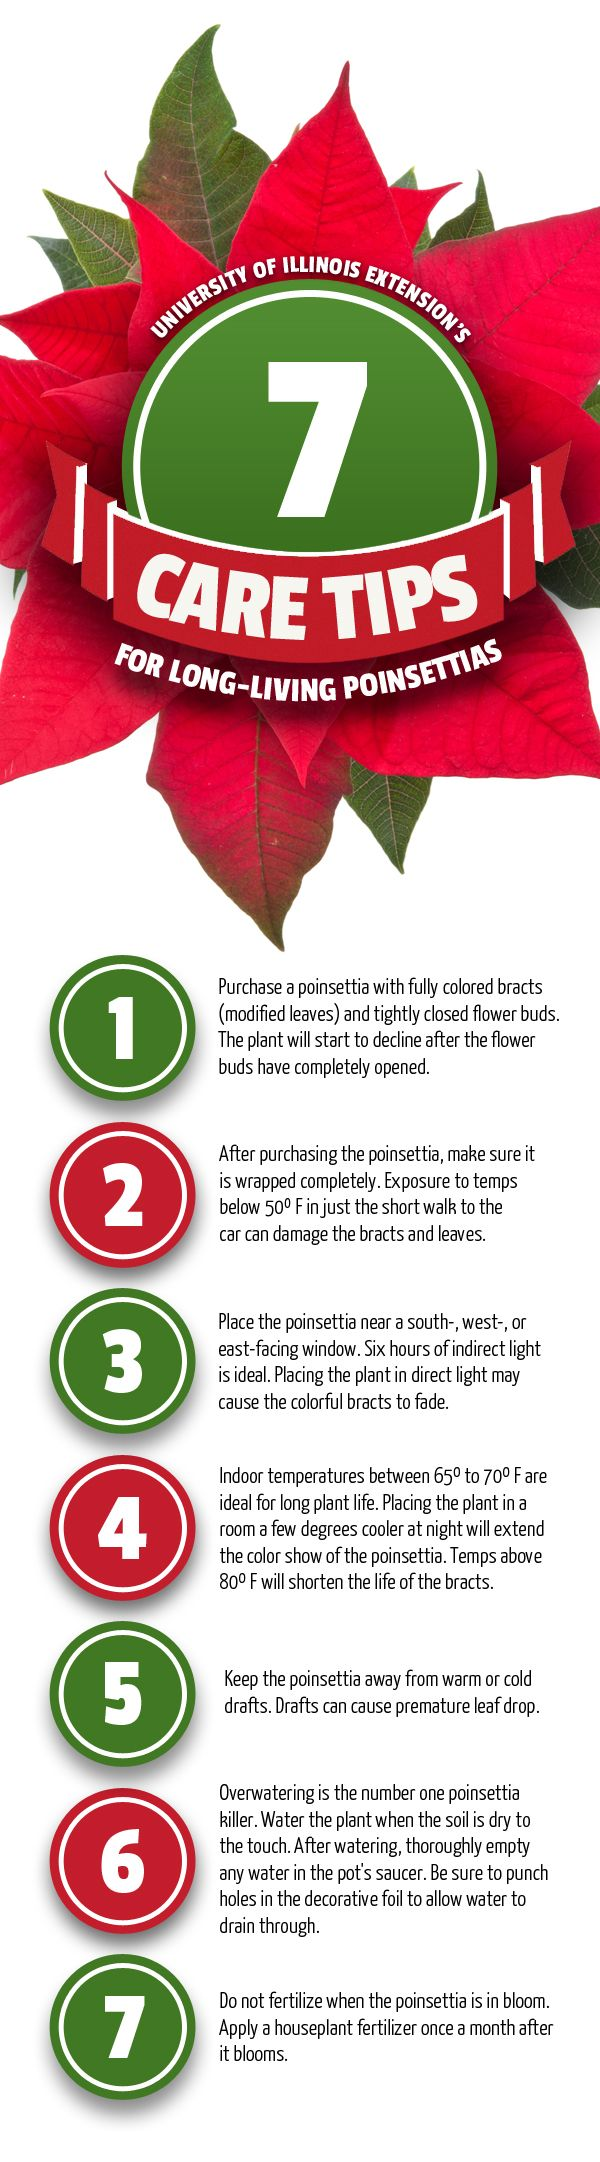 How To Keep Your Holiday Poinsettia Alive Longer With Images Poinsettia Plant Poinsettia Poinsettia Care